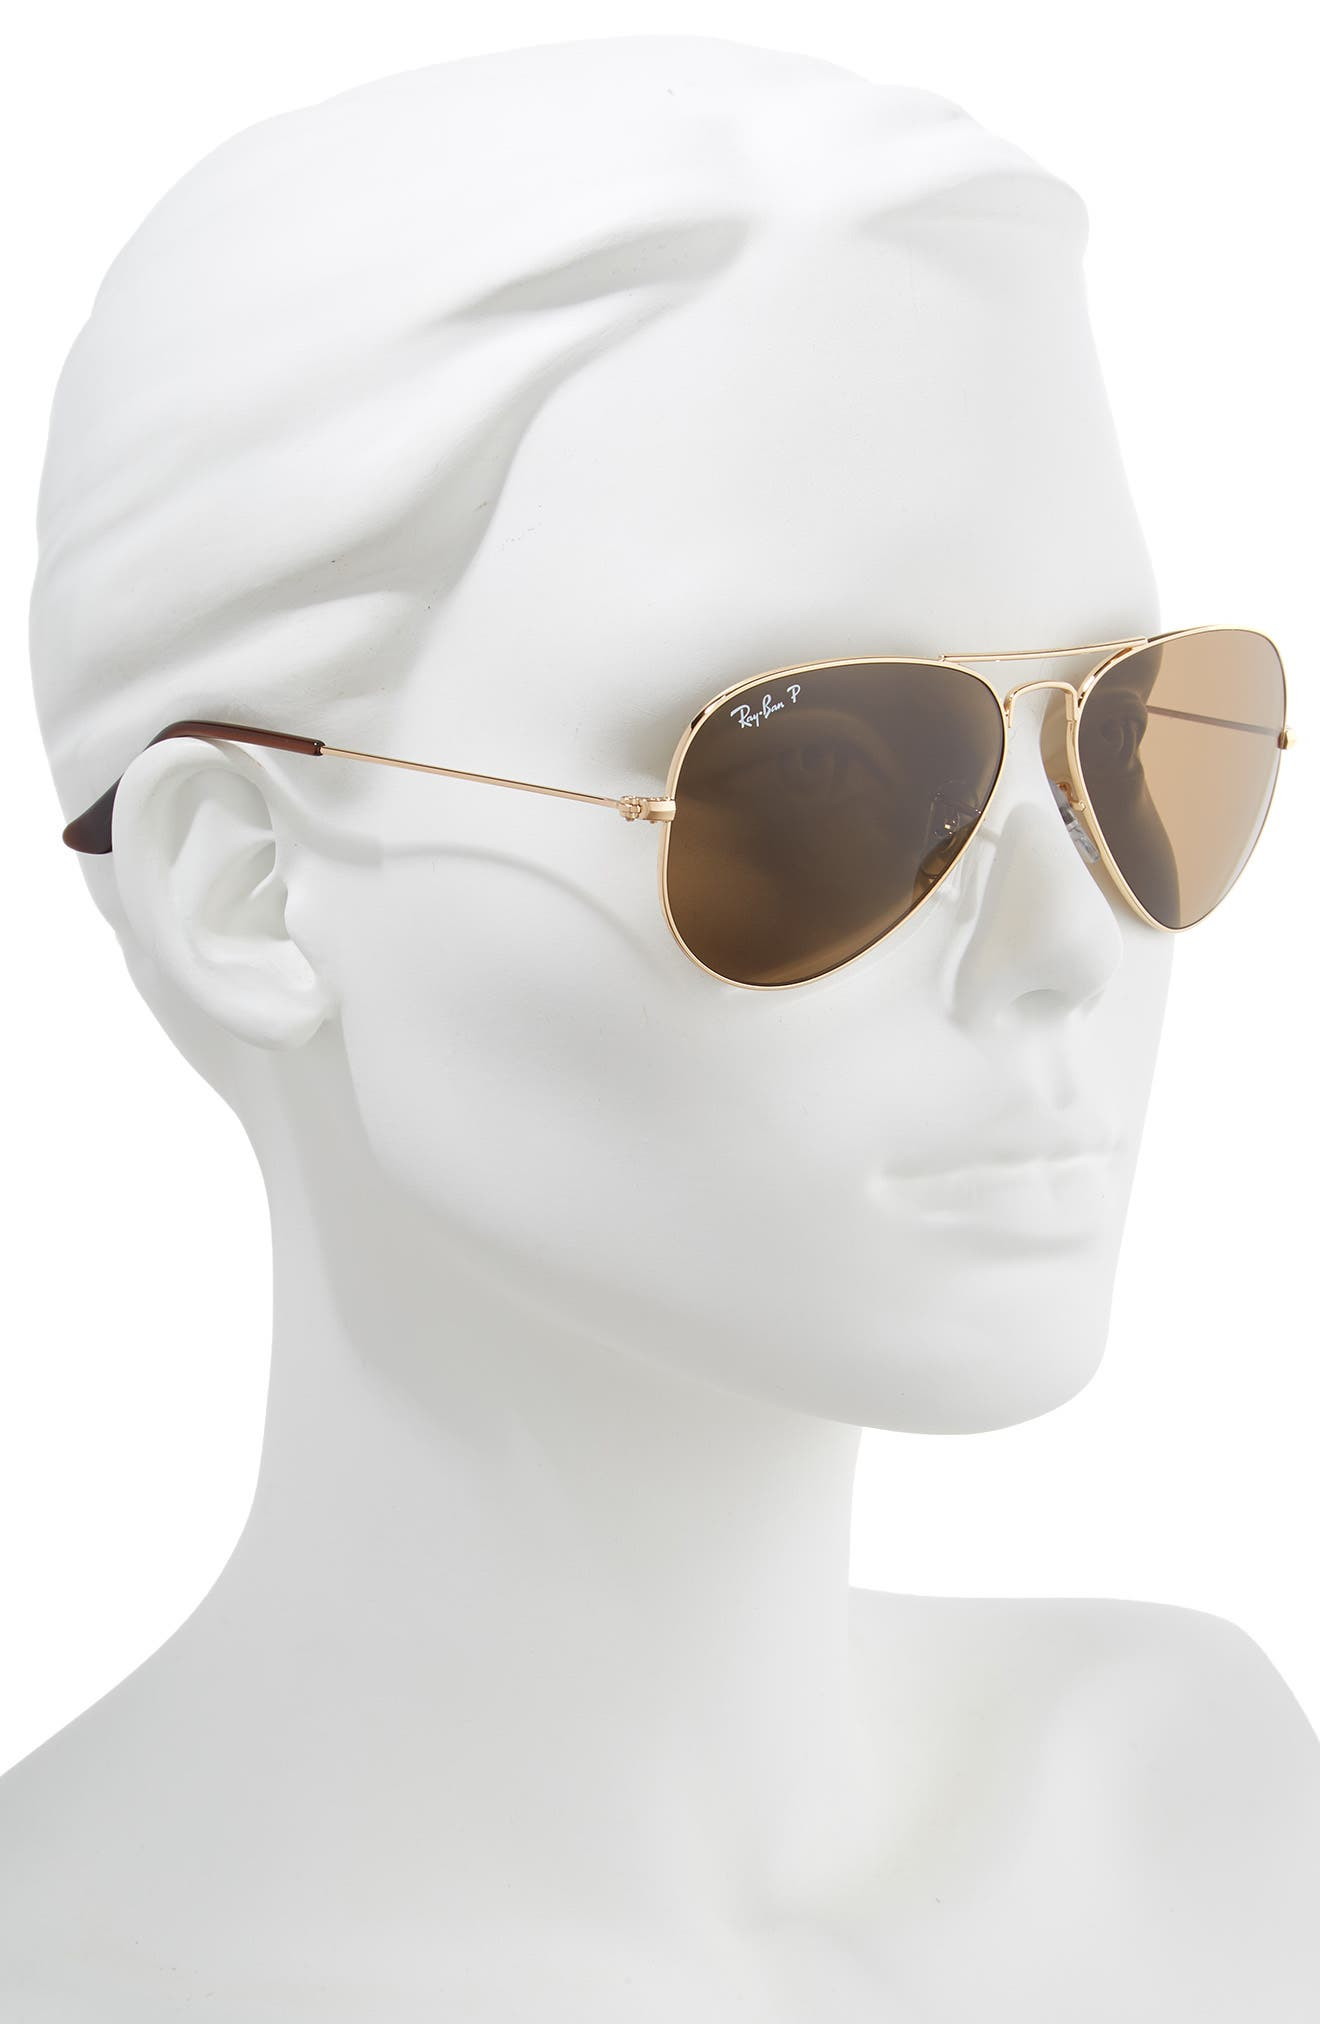 Original 58mm Aviator Sunglasses,                             Alternate thumbnail 2, color,                             GOLD/ BROWN SOLID